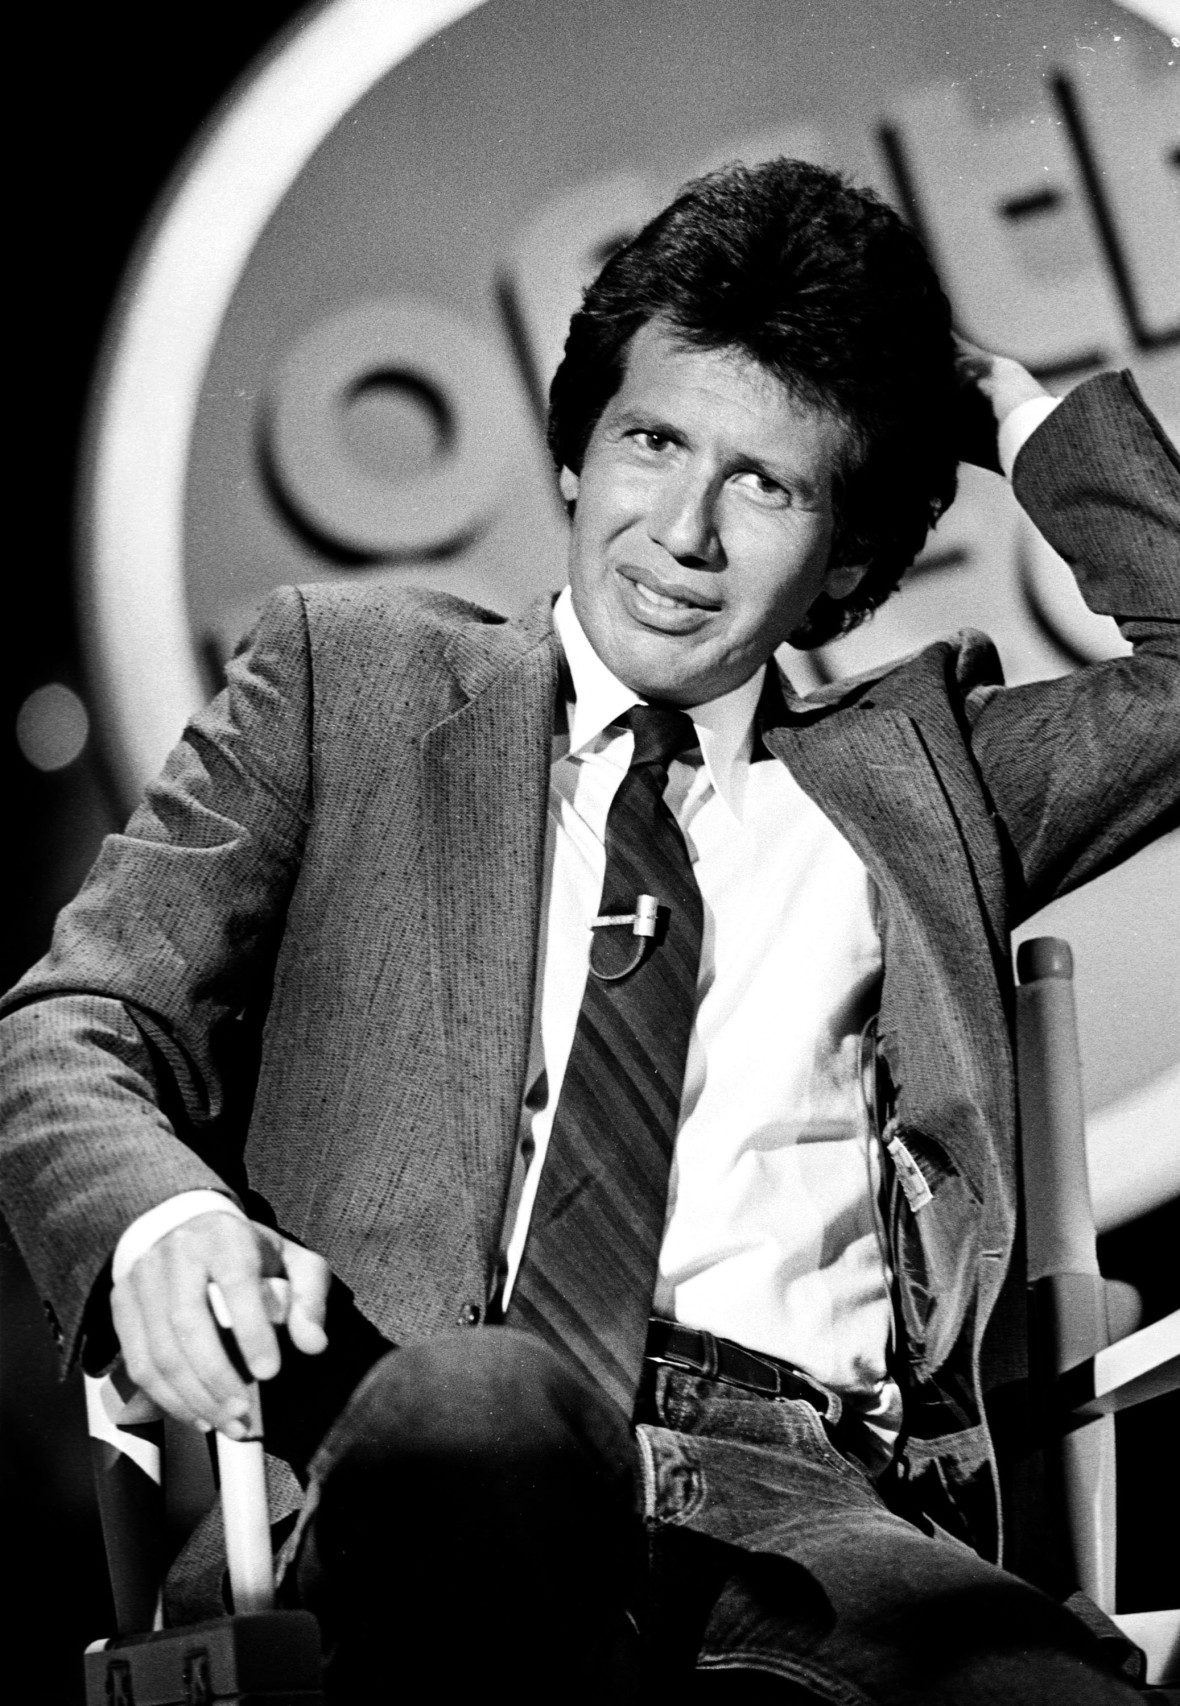 garry shandling getty images